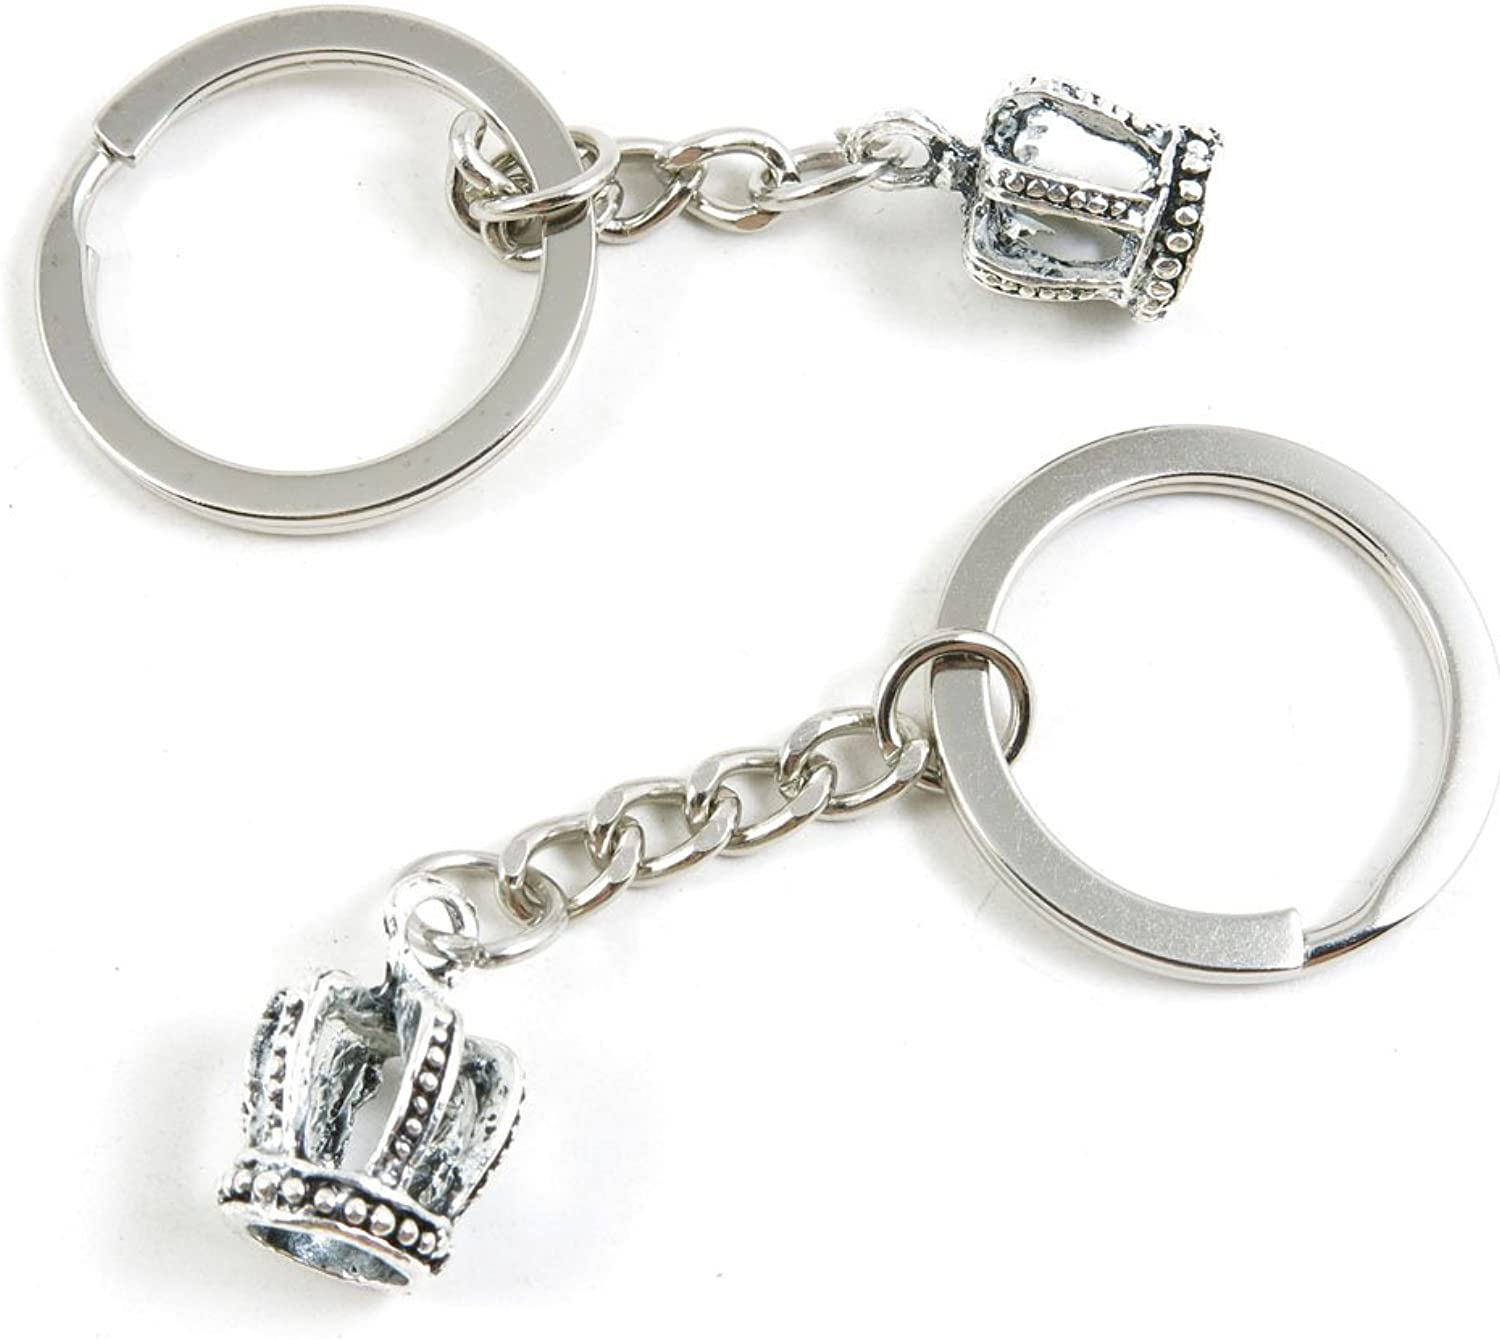 170 Pieces Fashion Jewelry Keyring Keychain Door Car Key Tag Ring Chain Supplier Supply Wholesale Bulk Lots C9YS9 3D Crown